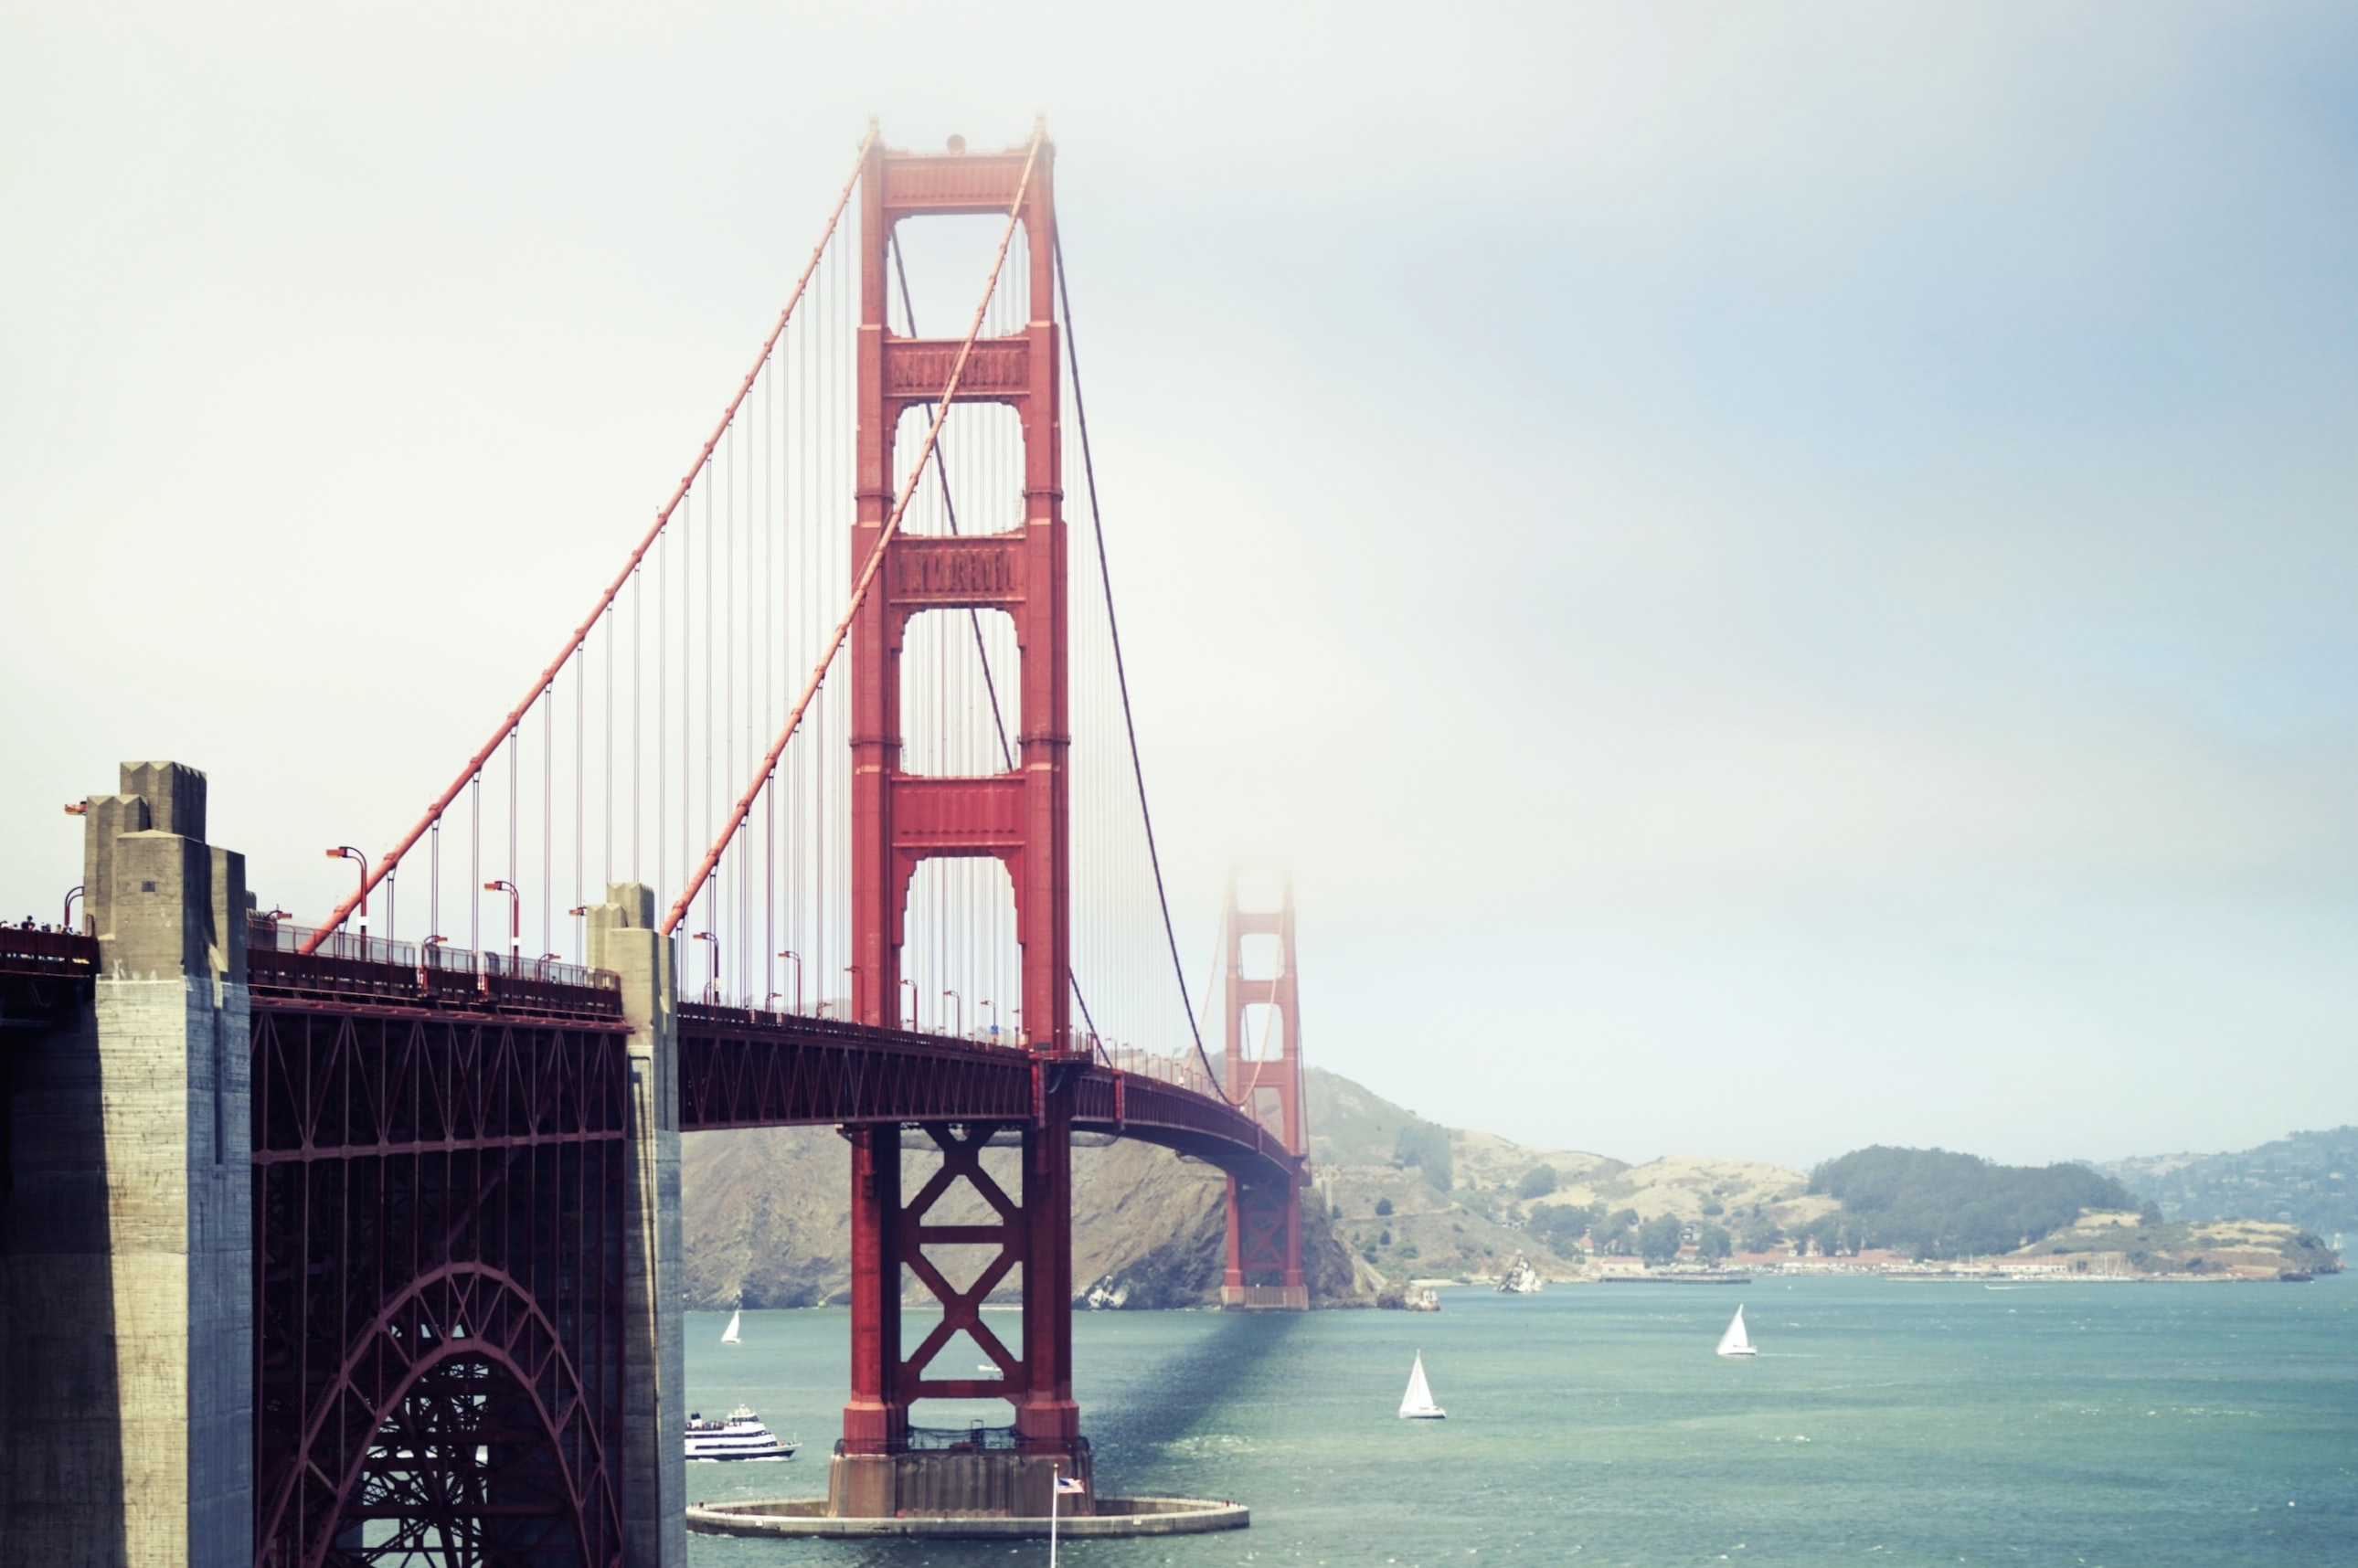 The Golden Gate Bridge in San Francisco on a clear day